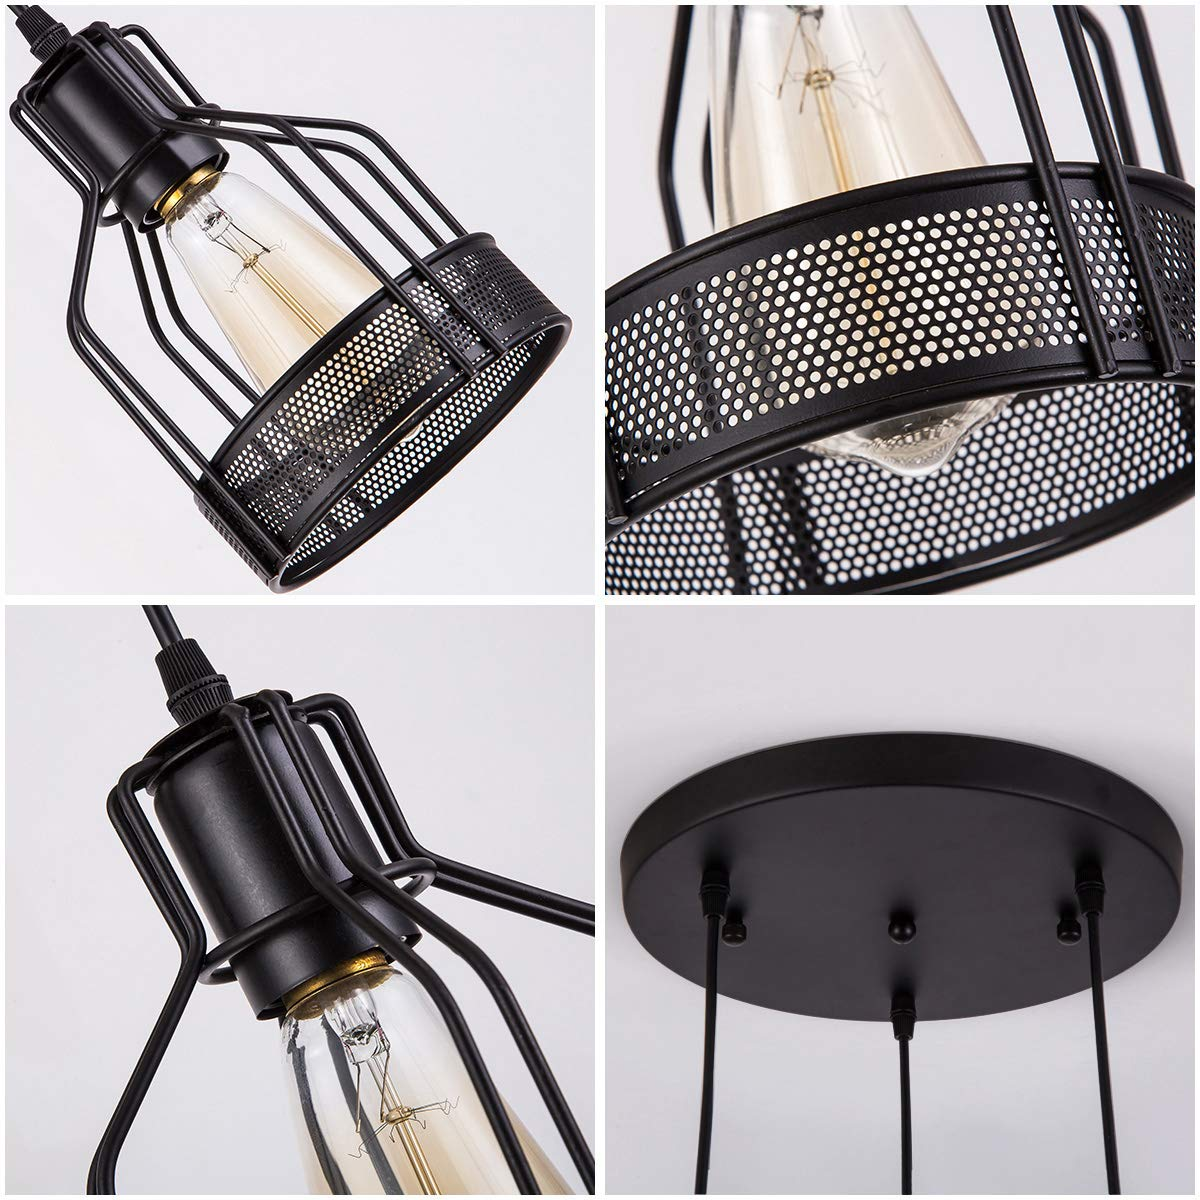 Pendant Light with Rustic Black Metal Cage Shade, Industrial Retro Matte Black Adjustable 3-Lights Hanging Lighting, Pendant lamp Fixtures for Home, Kitchen Island, Barn, Dining Room, Cafe, Farmhouse by ZYuan (Image #5)